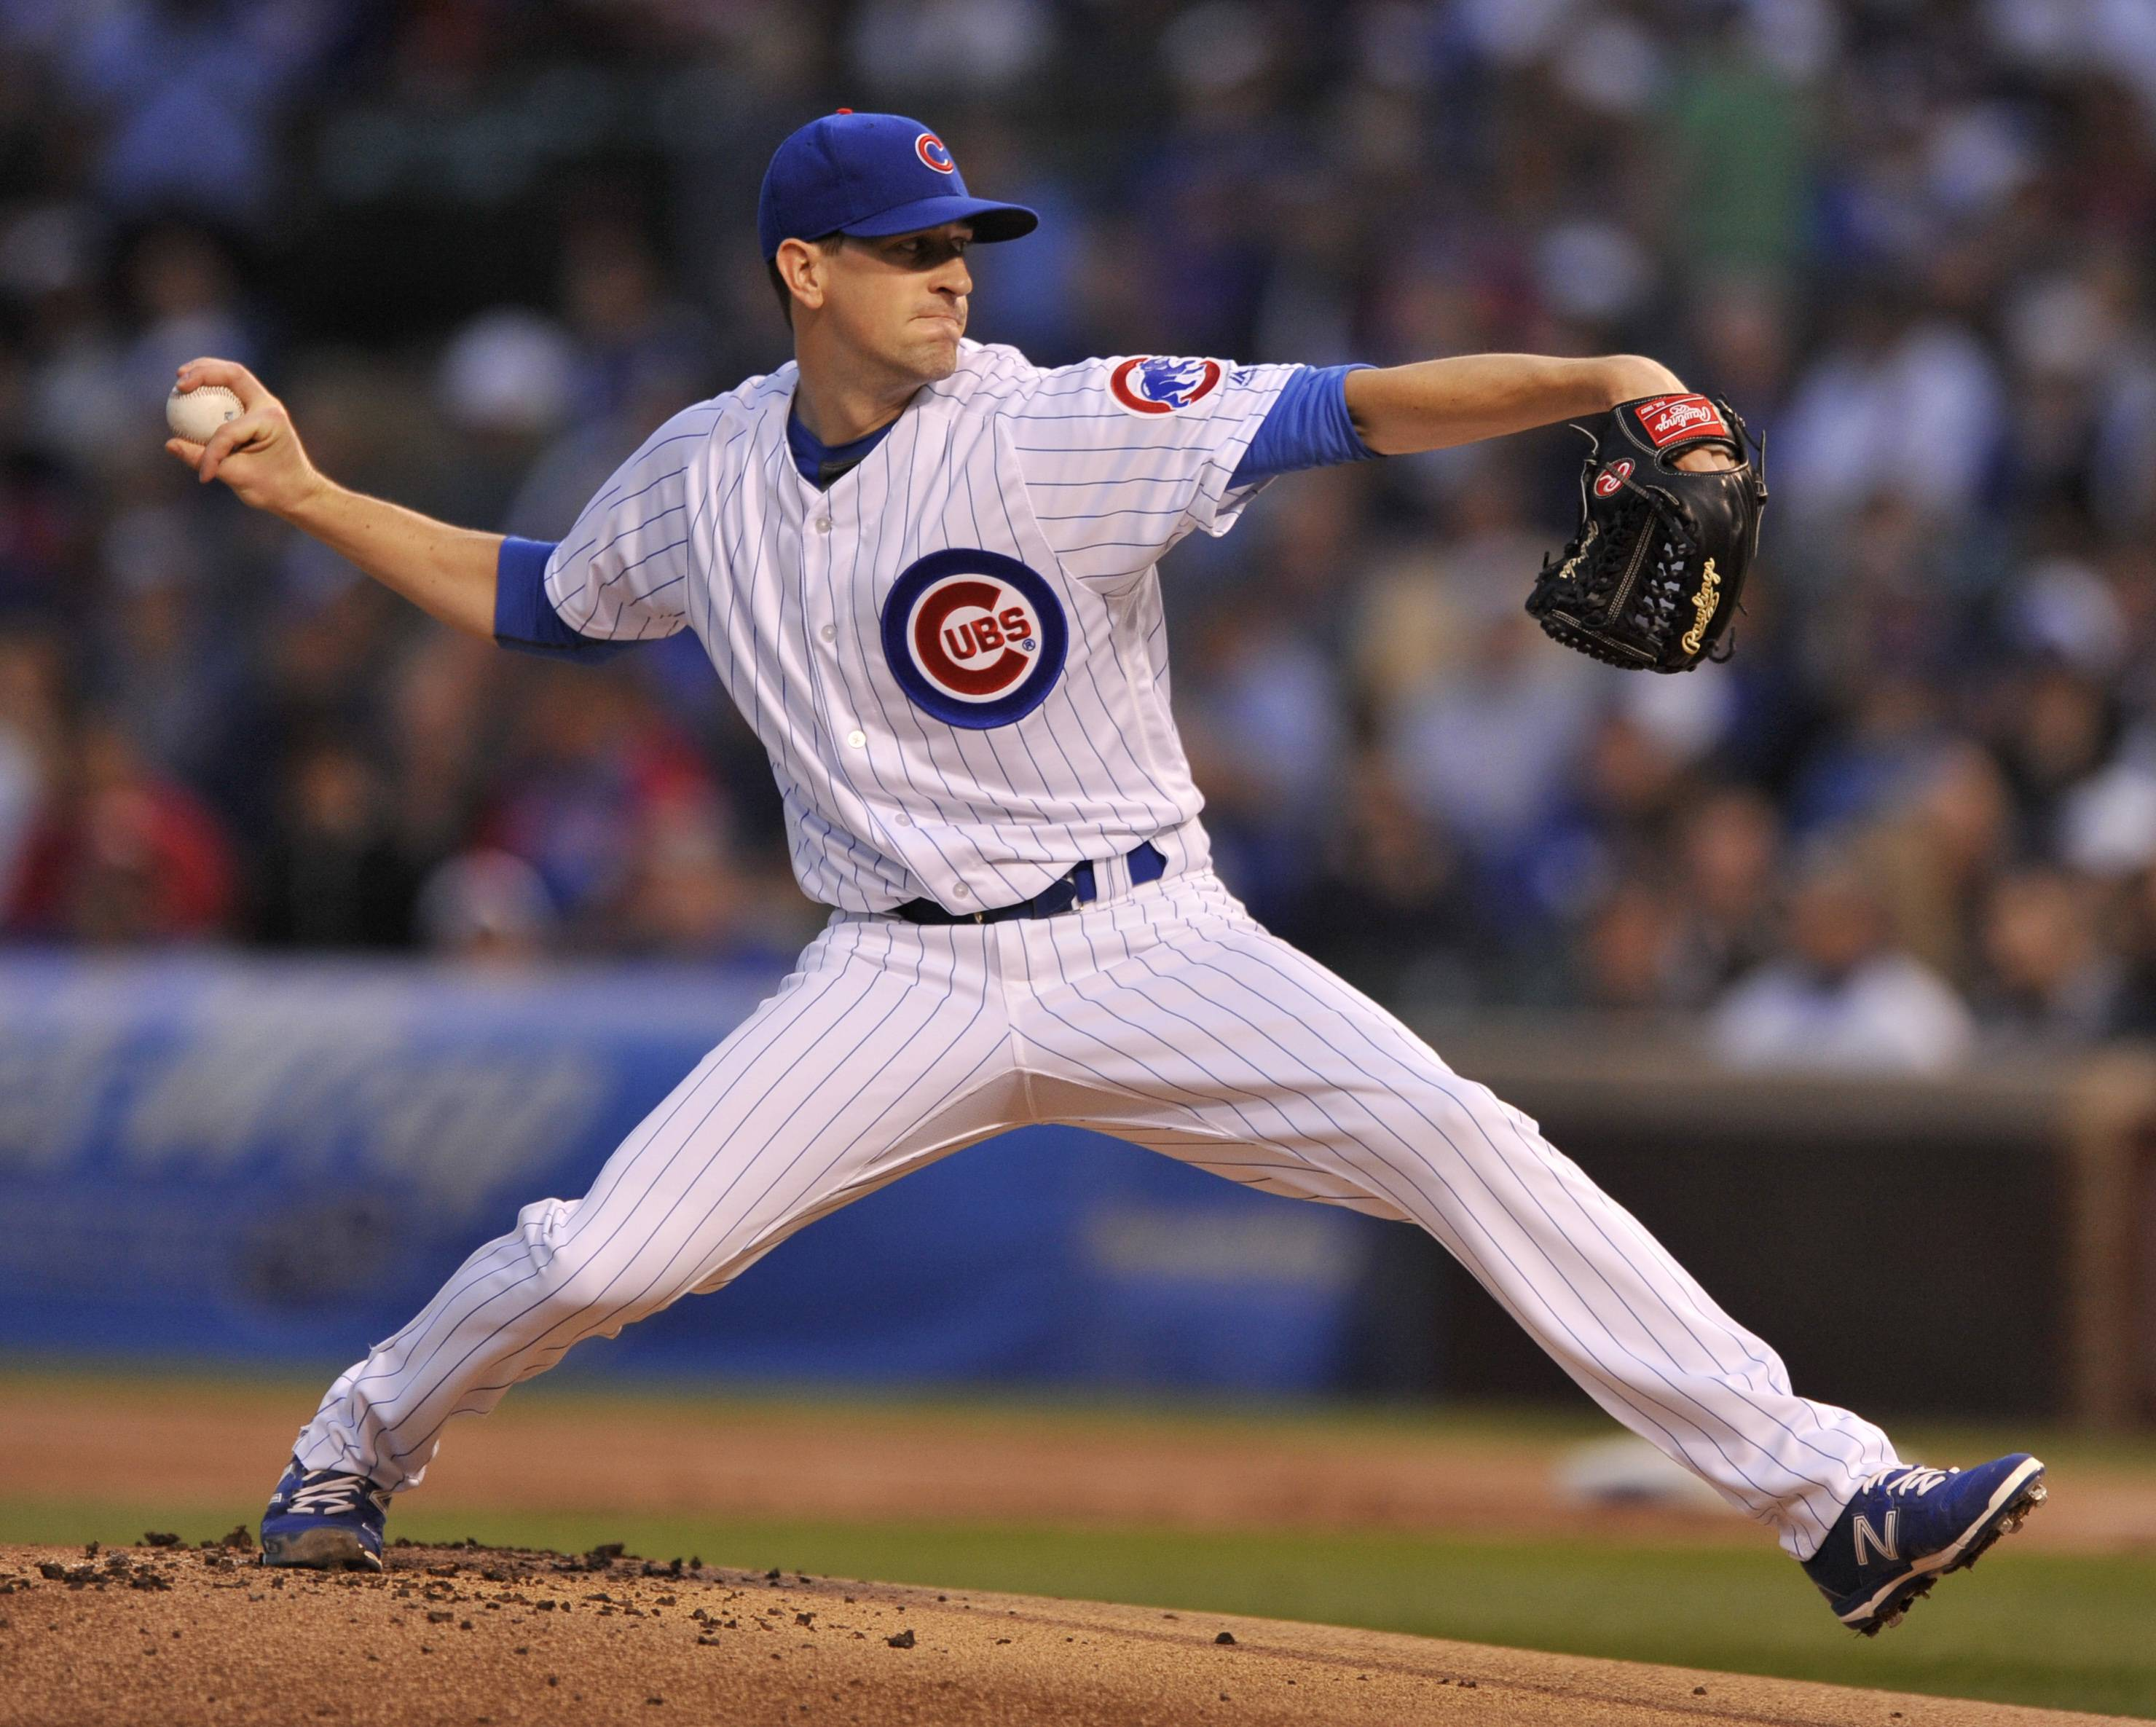 Chicago Cubs starter Kyle Hendricks delivers a pitch during the first inning of a baseball game against the Atlanta Braves, Thursday, Aug. 31, 2017, in Chicago. (AP Photo/Paul Beaty)